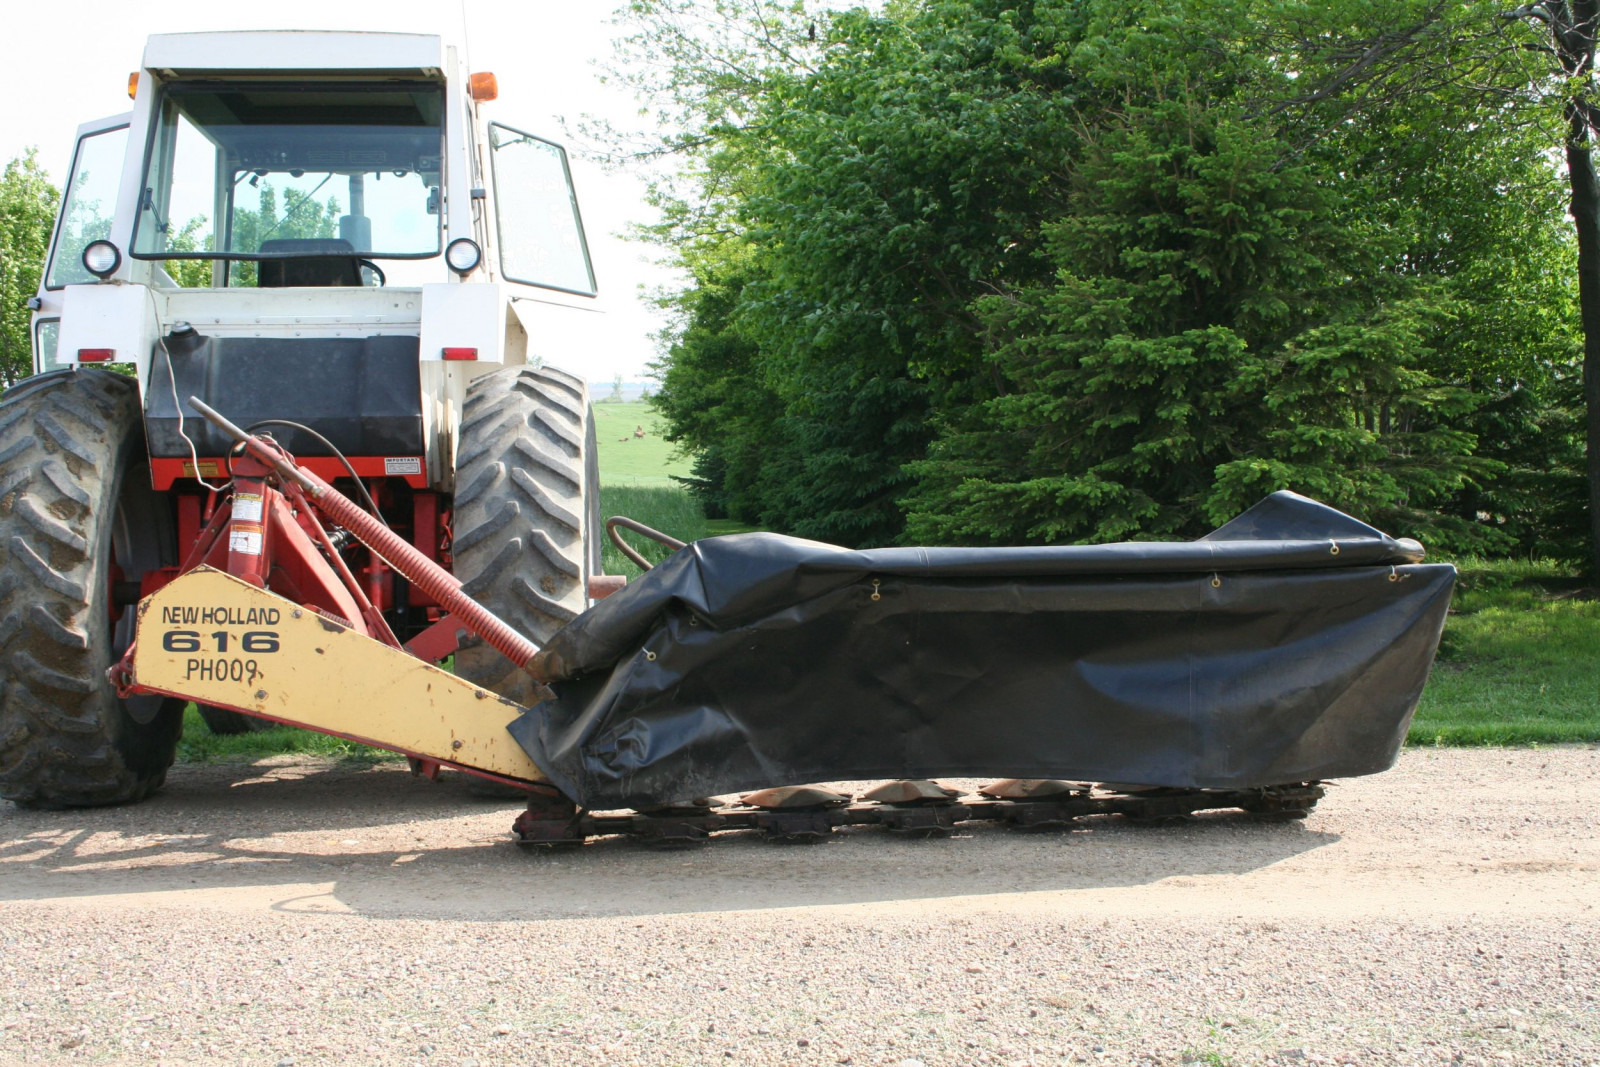 New Holland 616 Disc Mower - Image 1